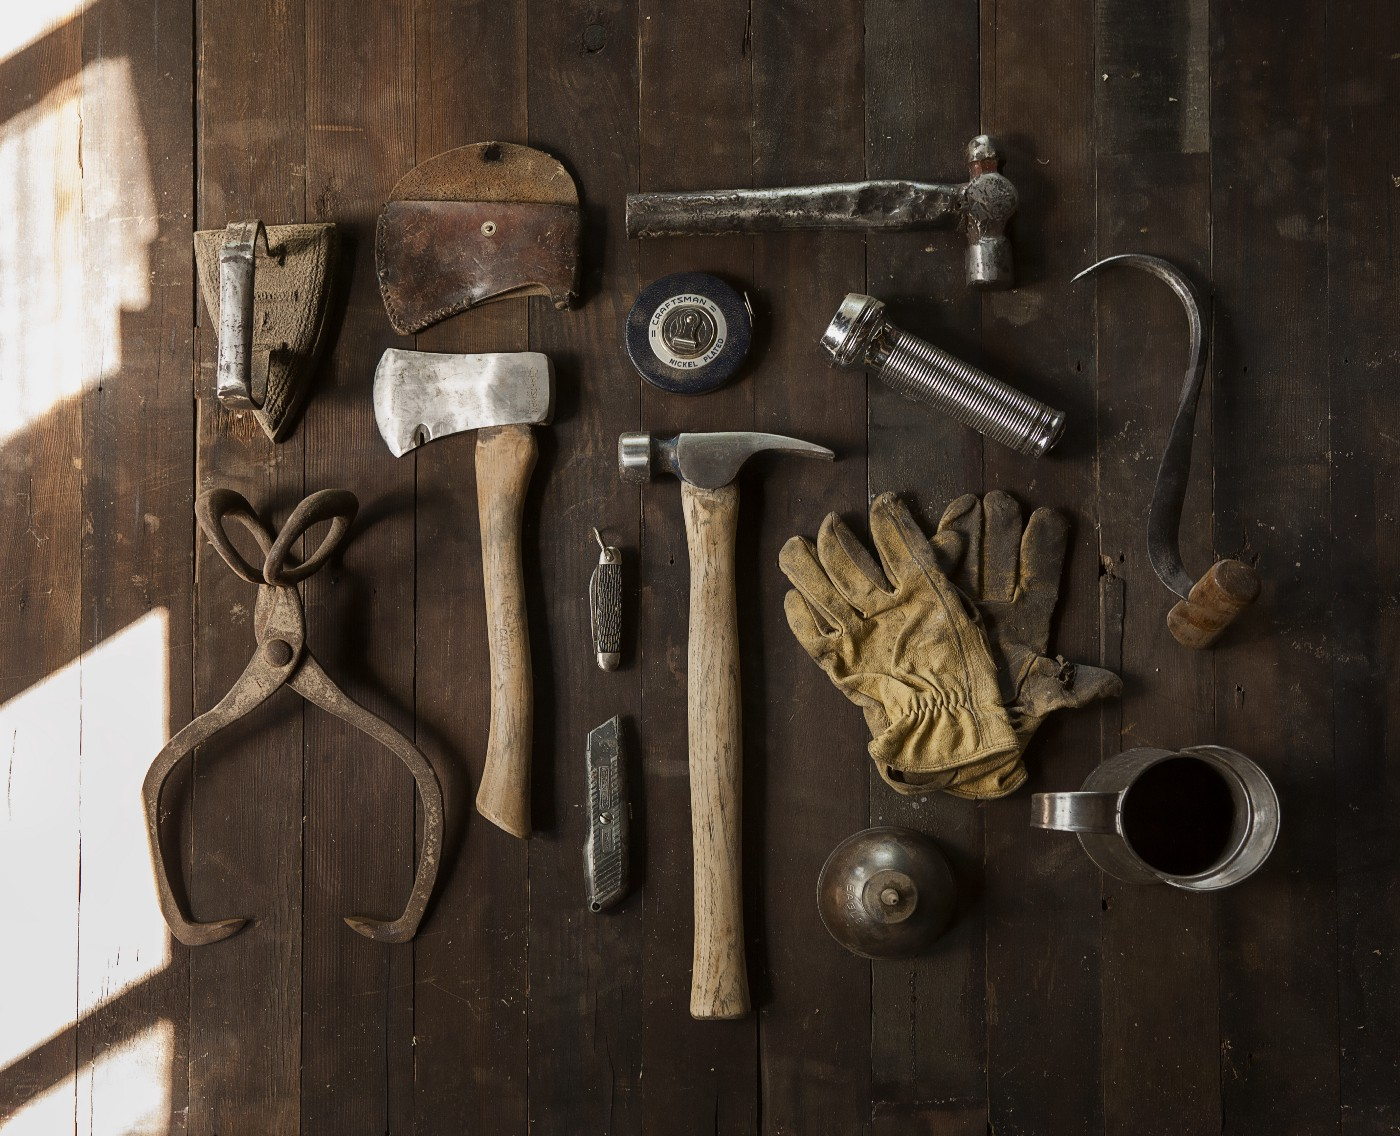 A selection of tools on a wooden surface